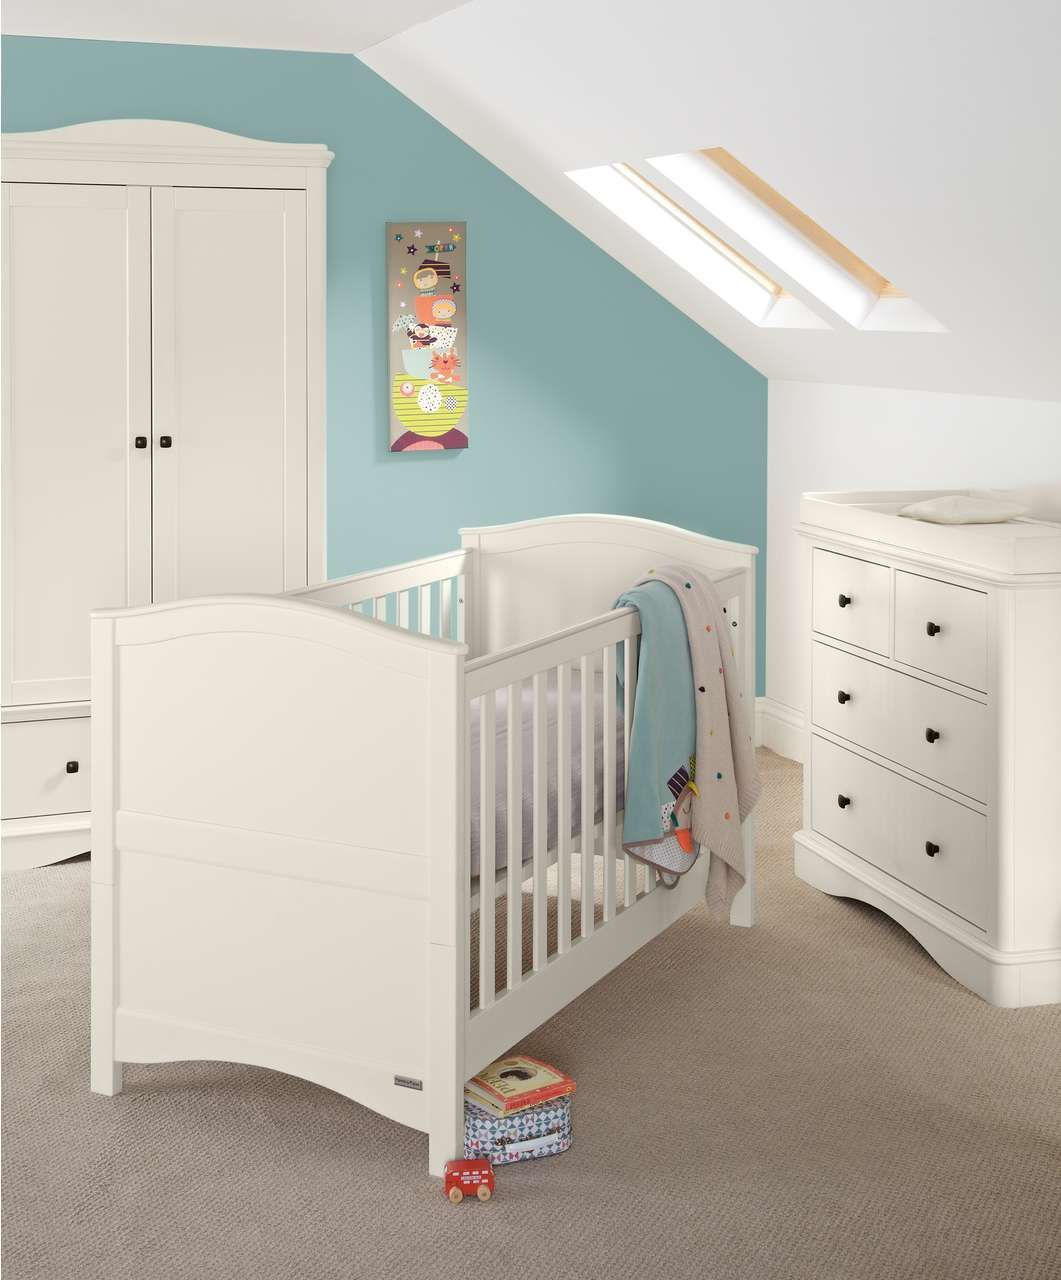 Our Nursery Furniture Ashford 3 Piece Set White